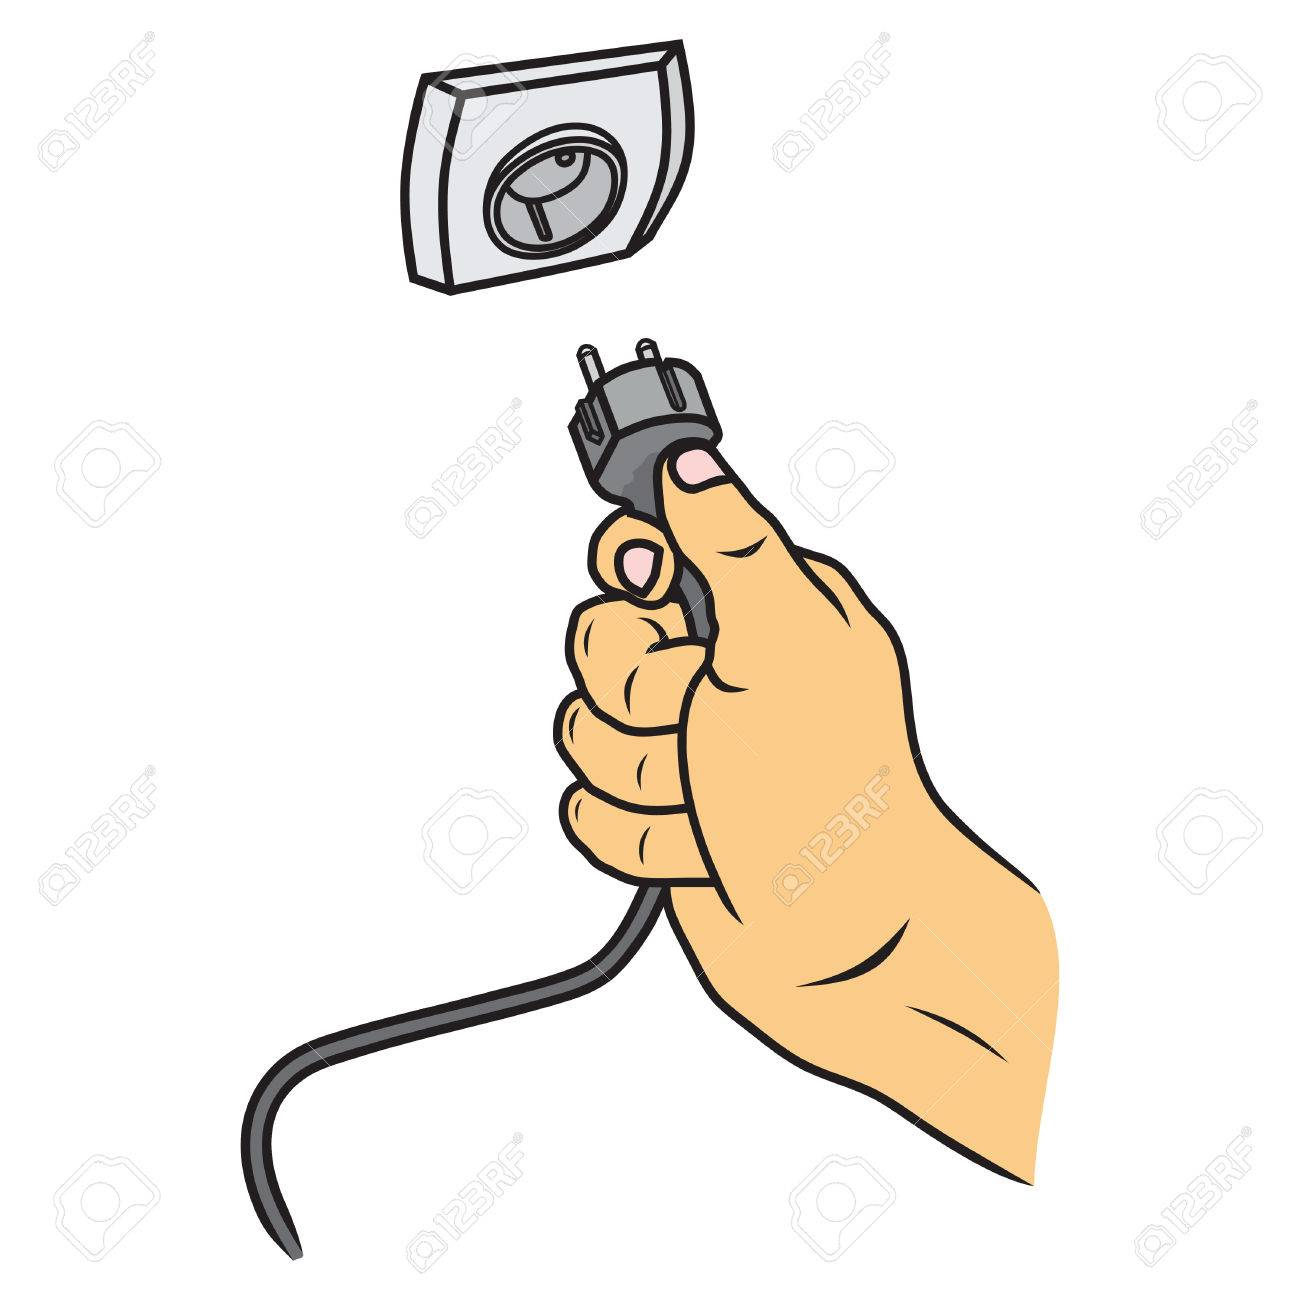 Hand Connecting Electrical Plug Vector Royalty Free Cliparts ...